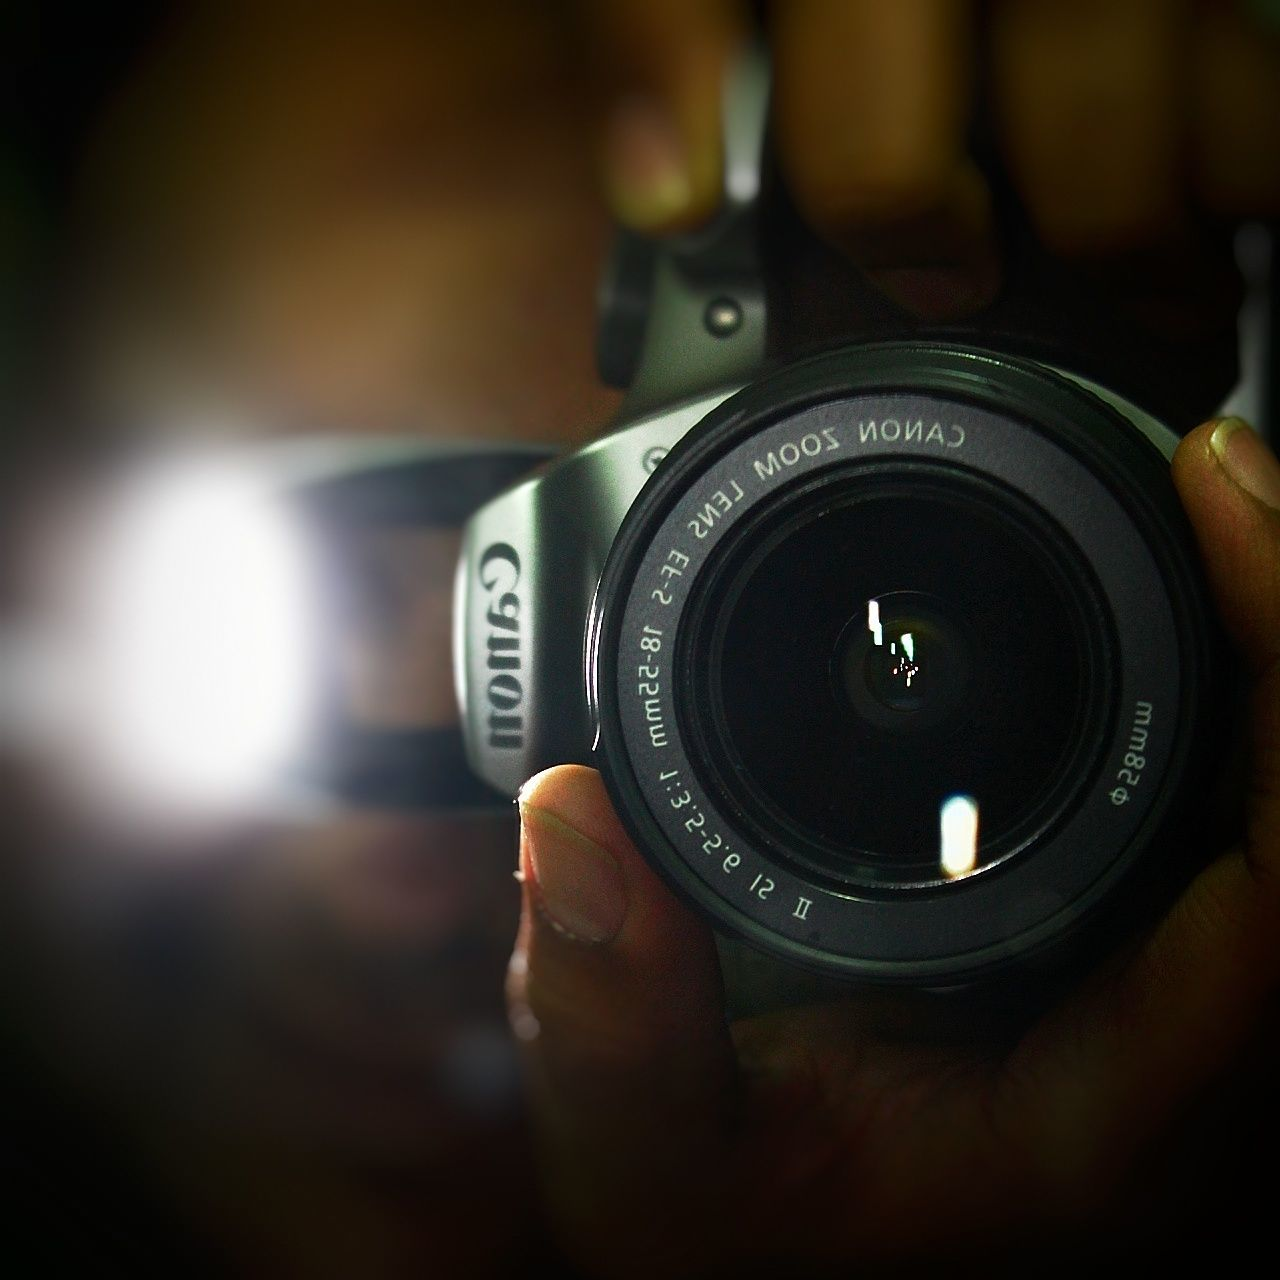 Photography Themes Camera - Photographic Equipment Close-up Old-fashioned Photograph No People Technology SLR Camera Modern Indoors  Day Camera Flash Photography Photographer Photographer In The Shot Self Portrait Self Portrait With Camera Self Portrait Photography Self Portrait Experiments